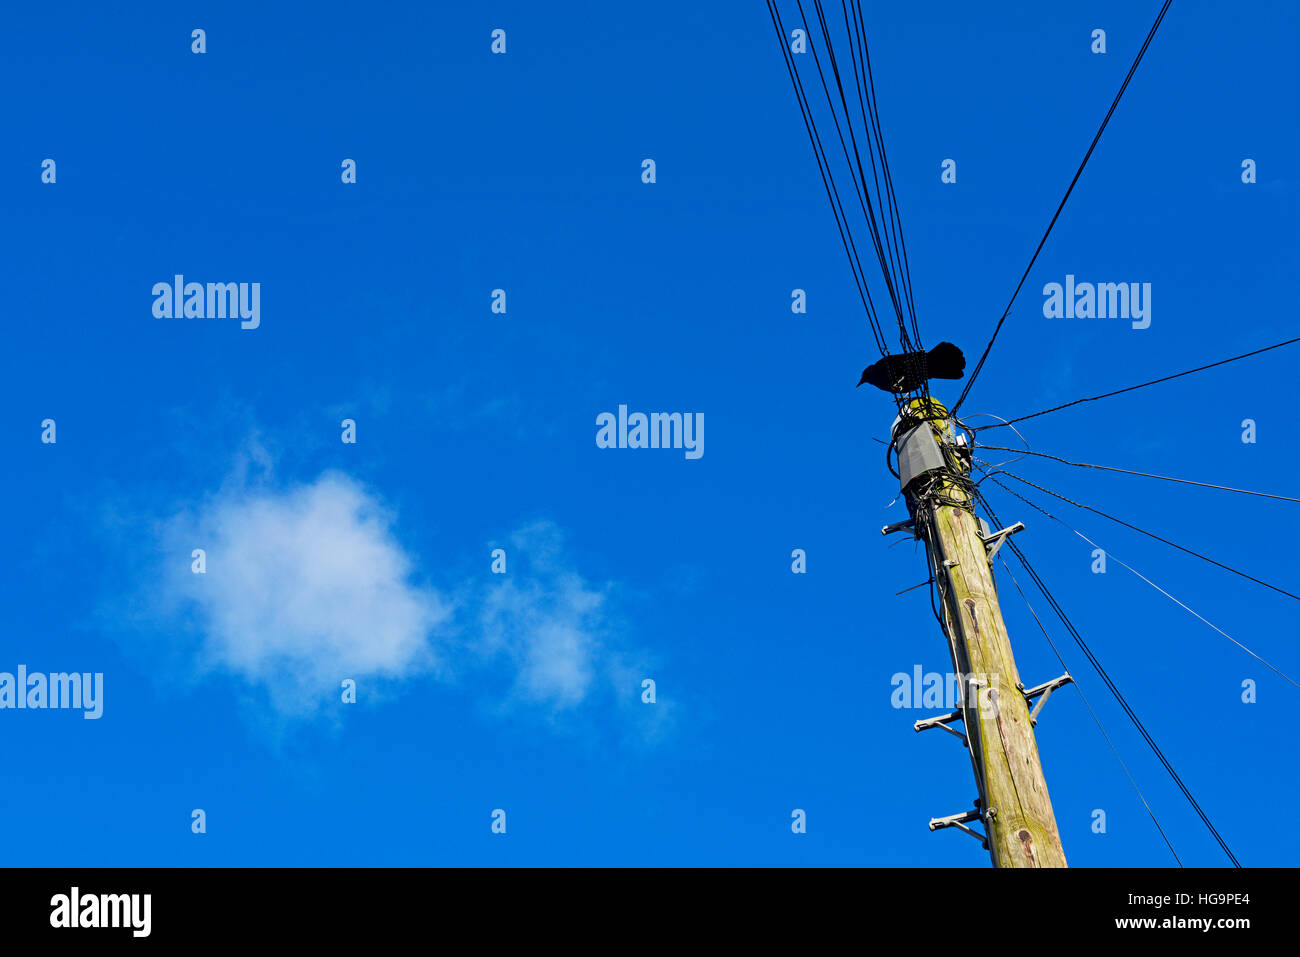 Jackdaw perched on top of telephone pole - Stock Image